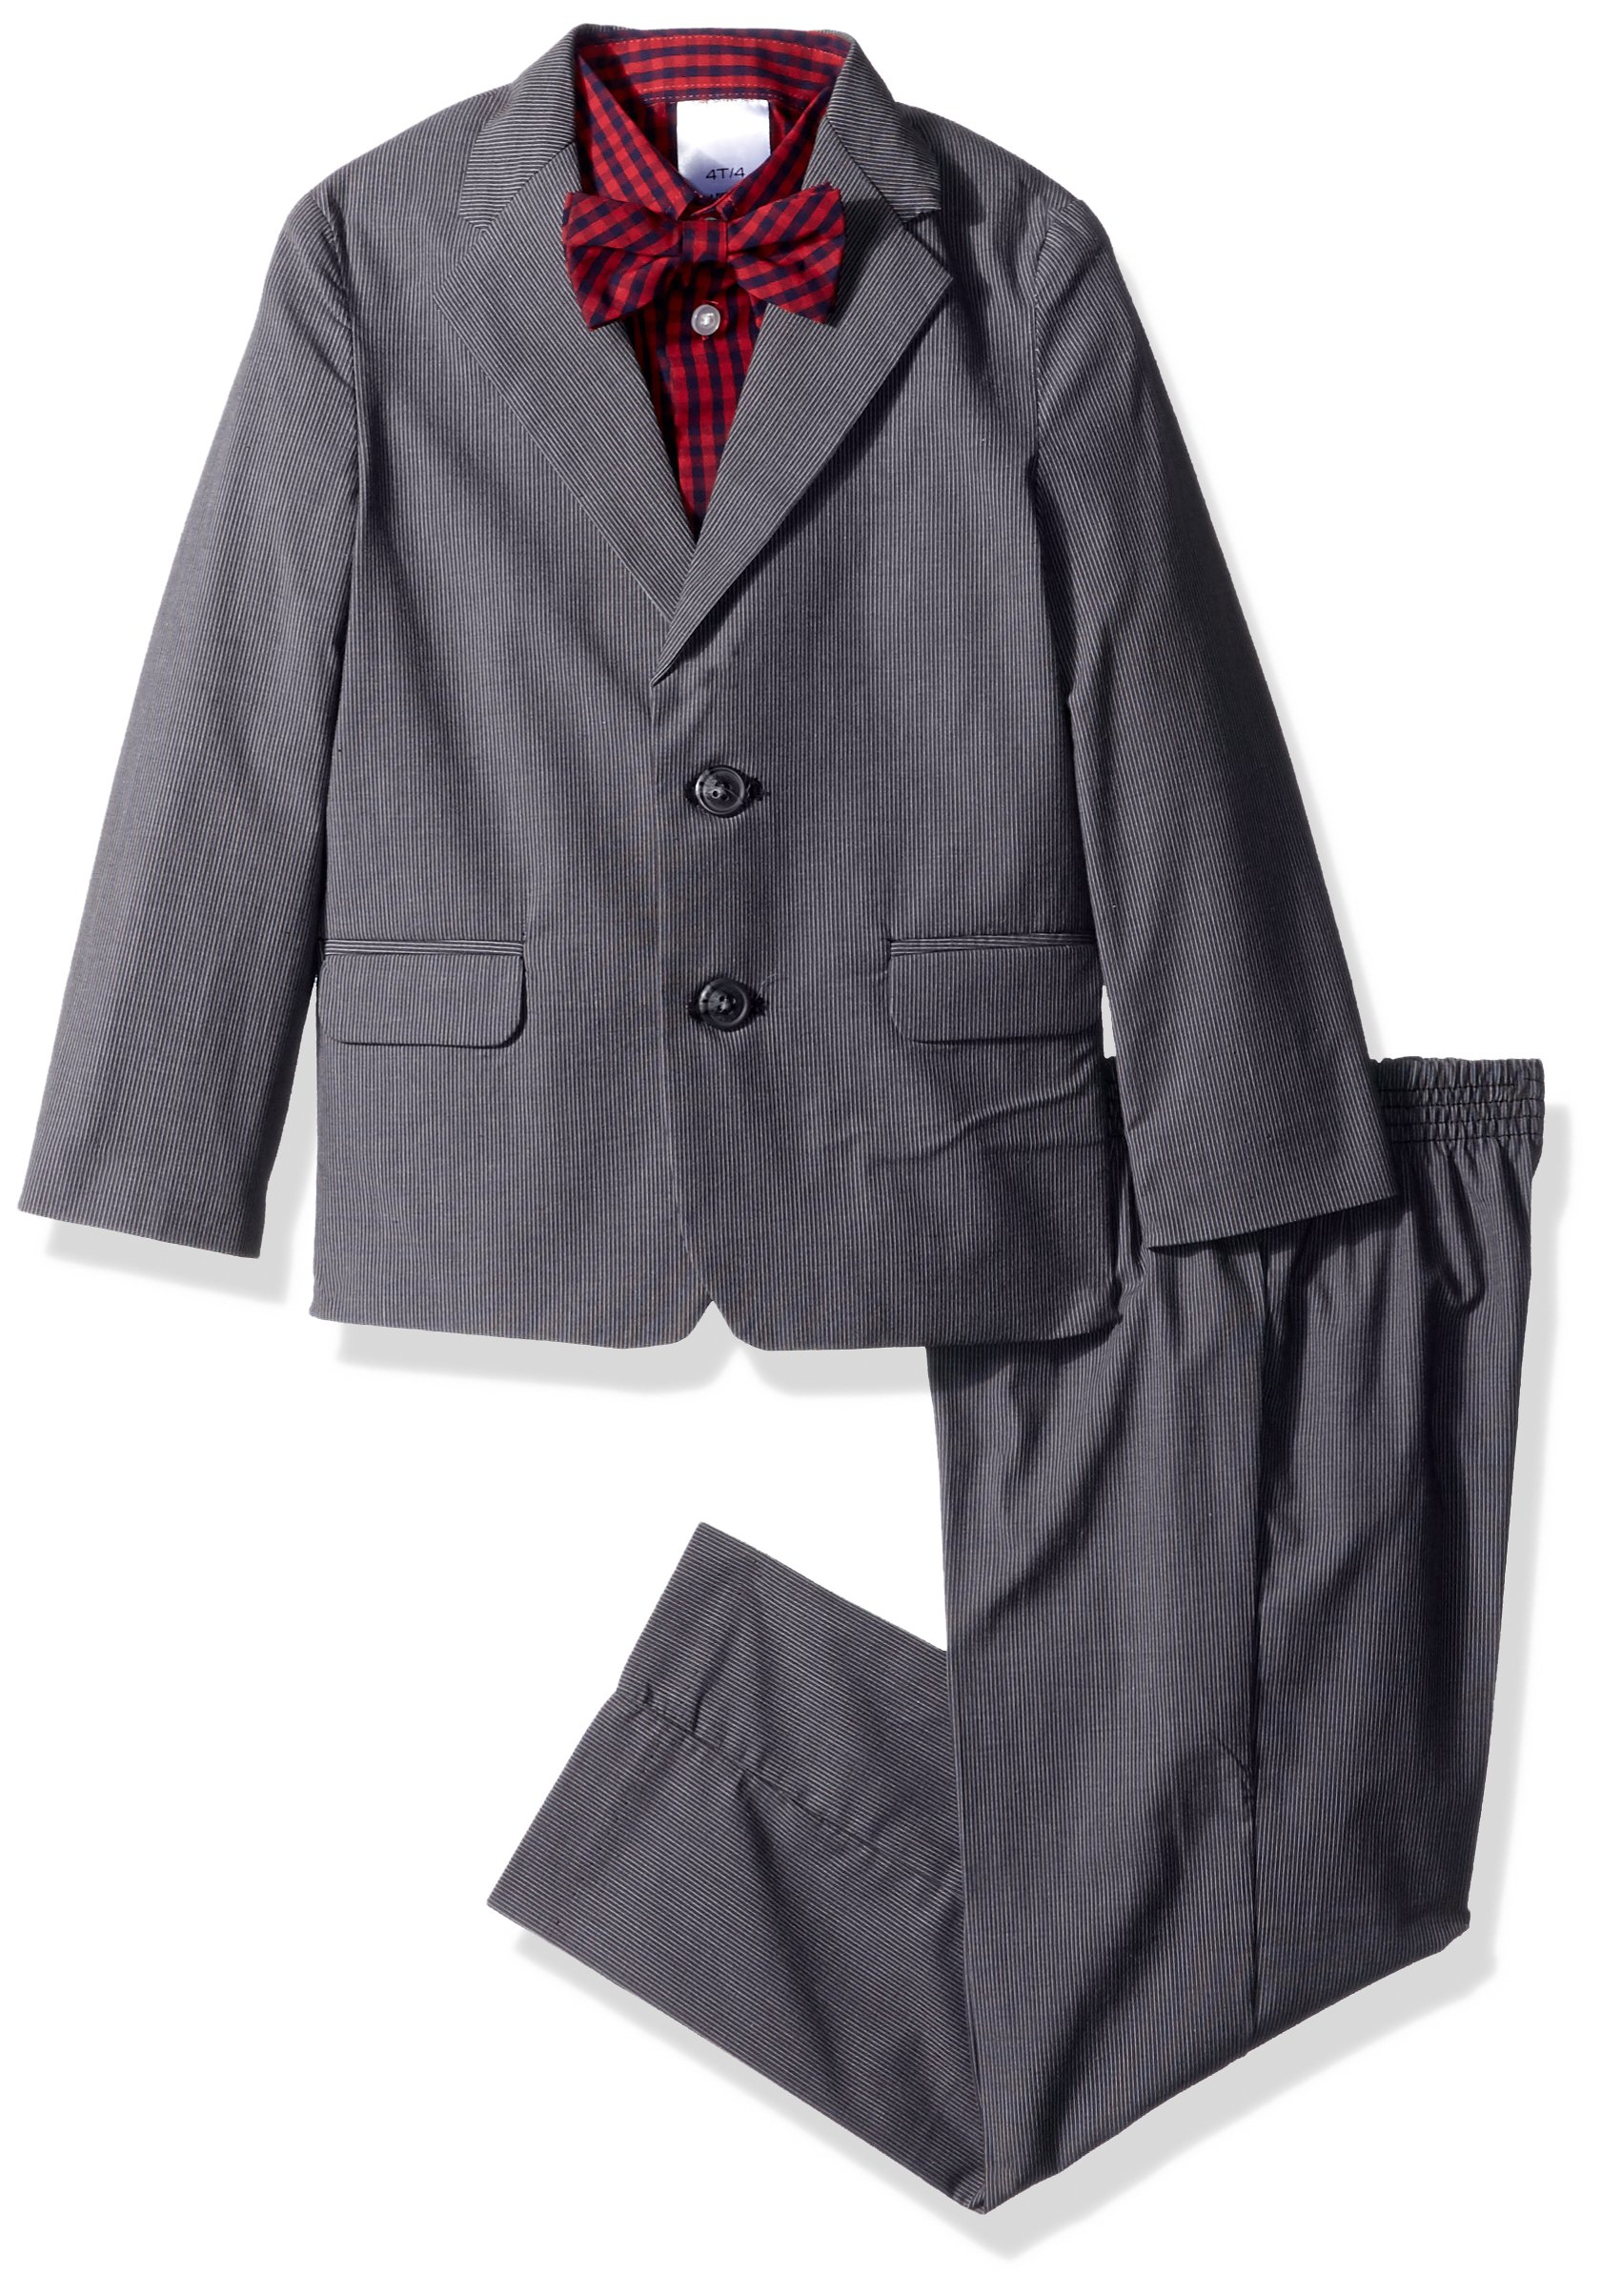 Nautica Boys' 4-Piece Formal Dresswear Suit Set with Bow Tie, Dark Gray, 6